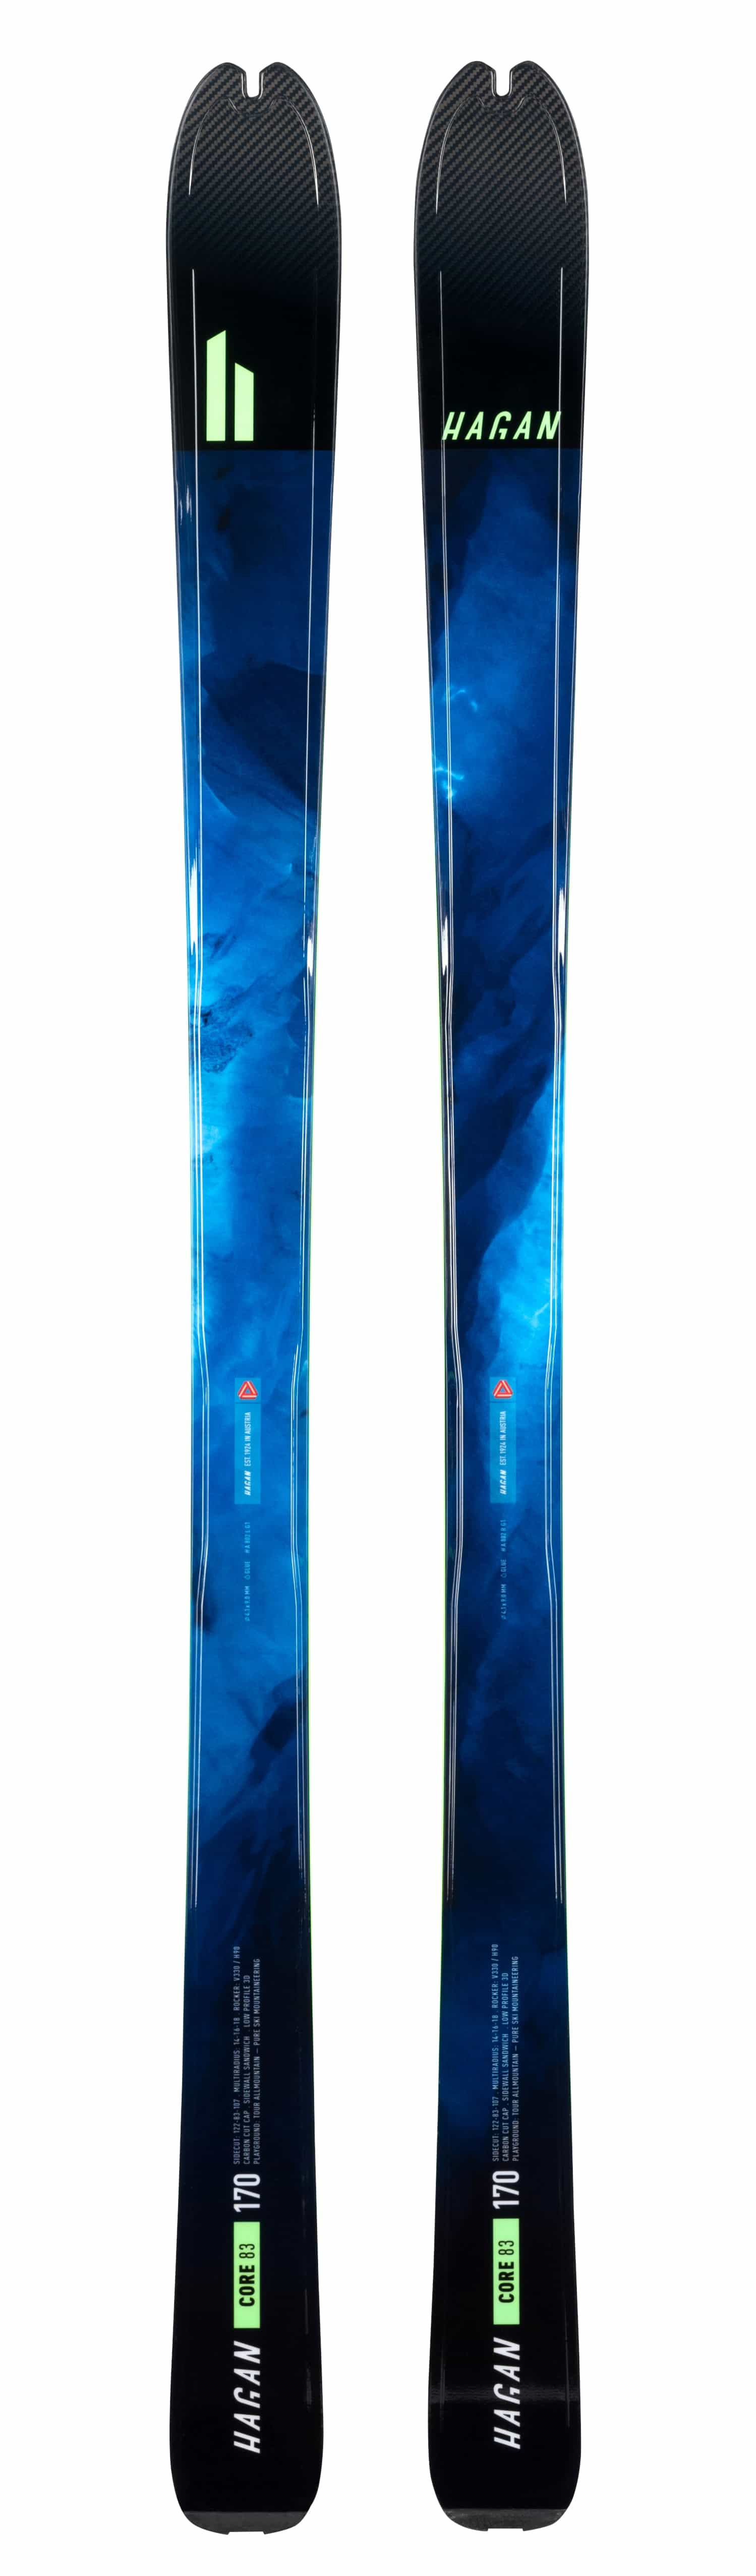 Core 83, Skis - Hagan Ski Mountaineering